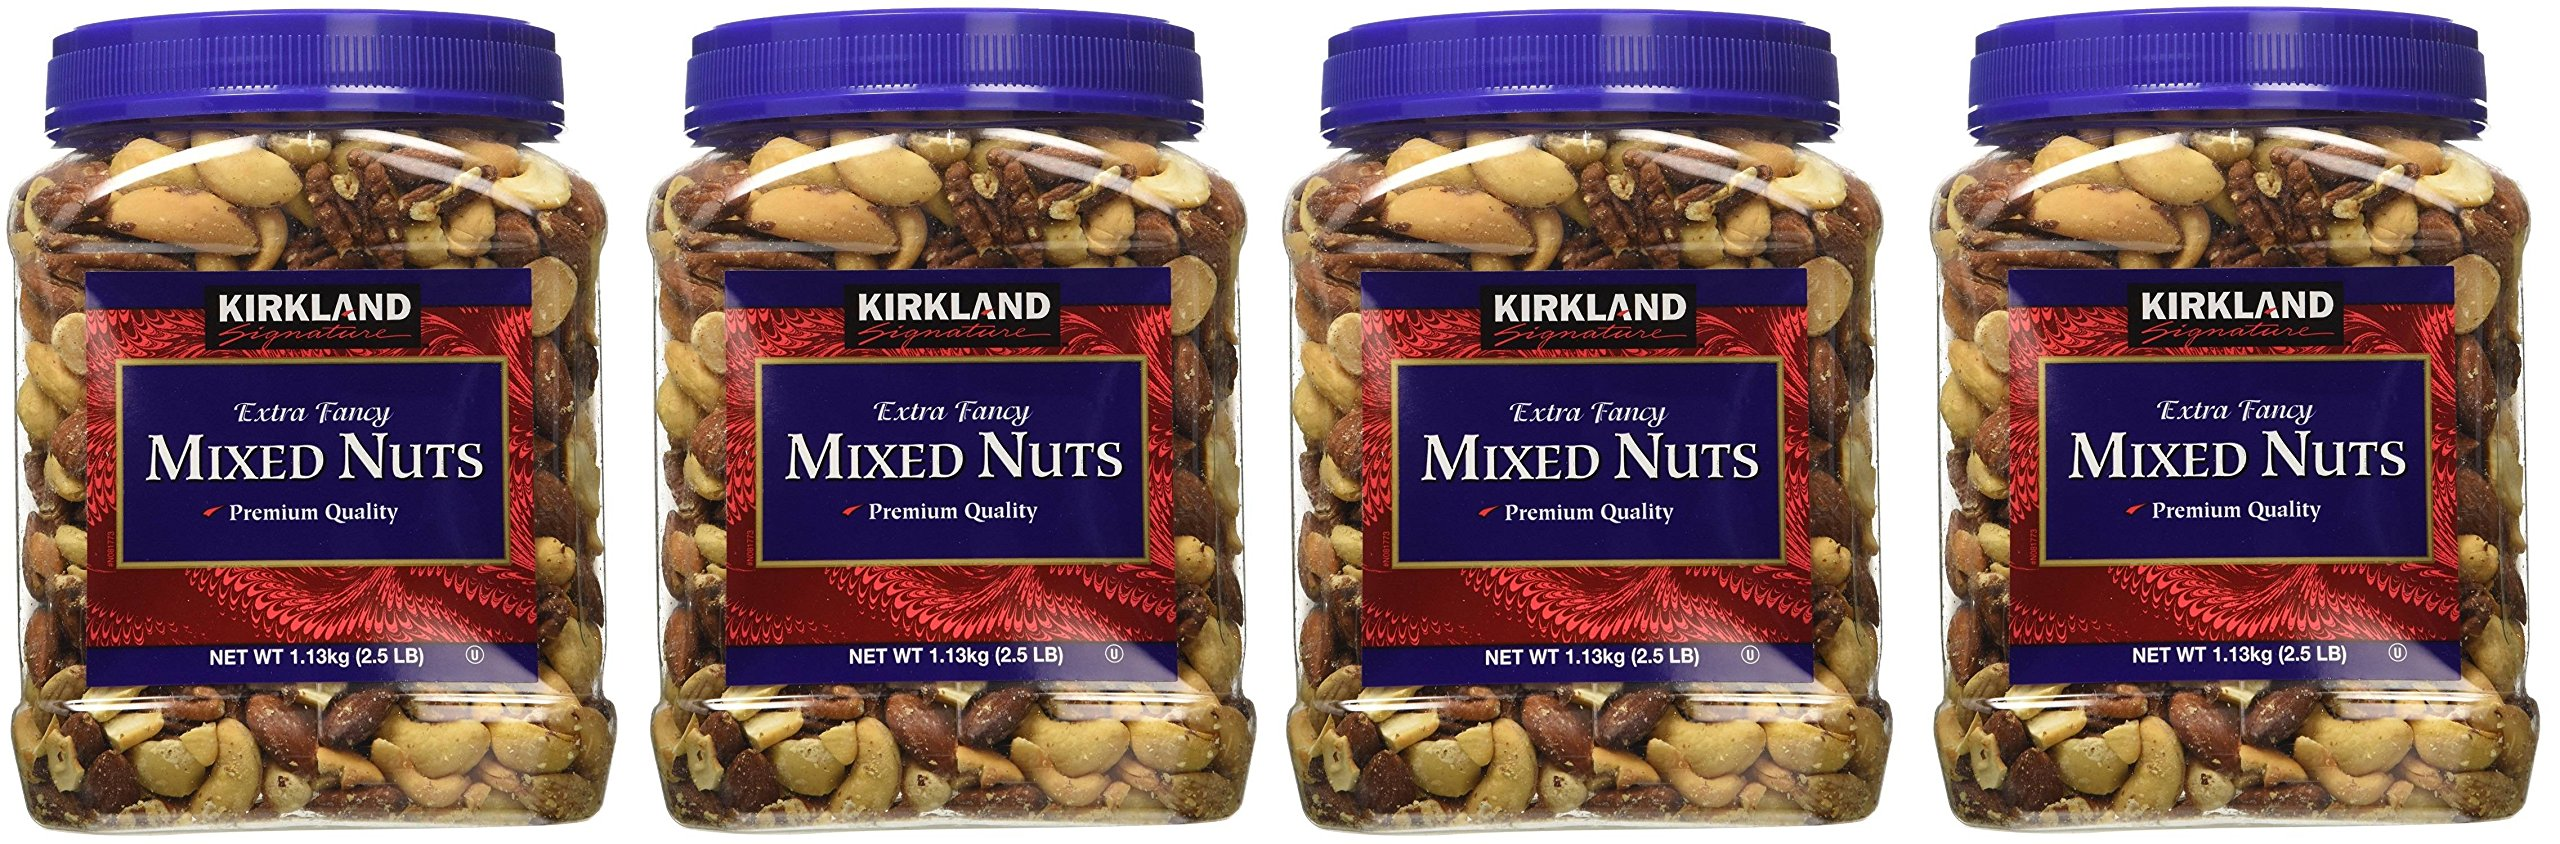 Kirkland Signature qCqKzc Fancy Mixed Nuts, 40 Ounce (4 Pack) by Kirkland Signature